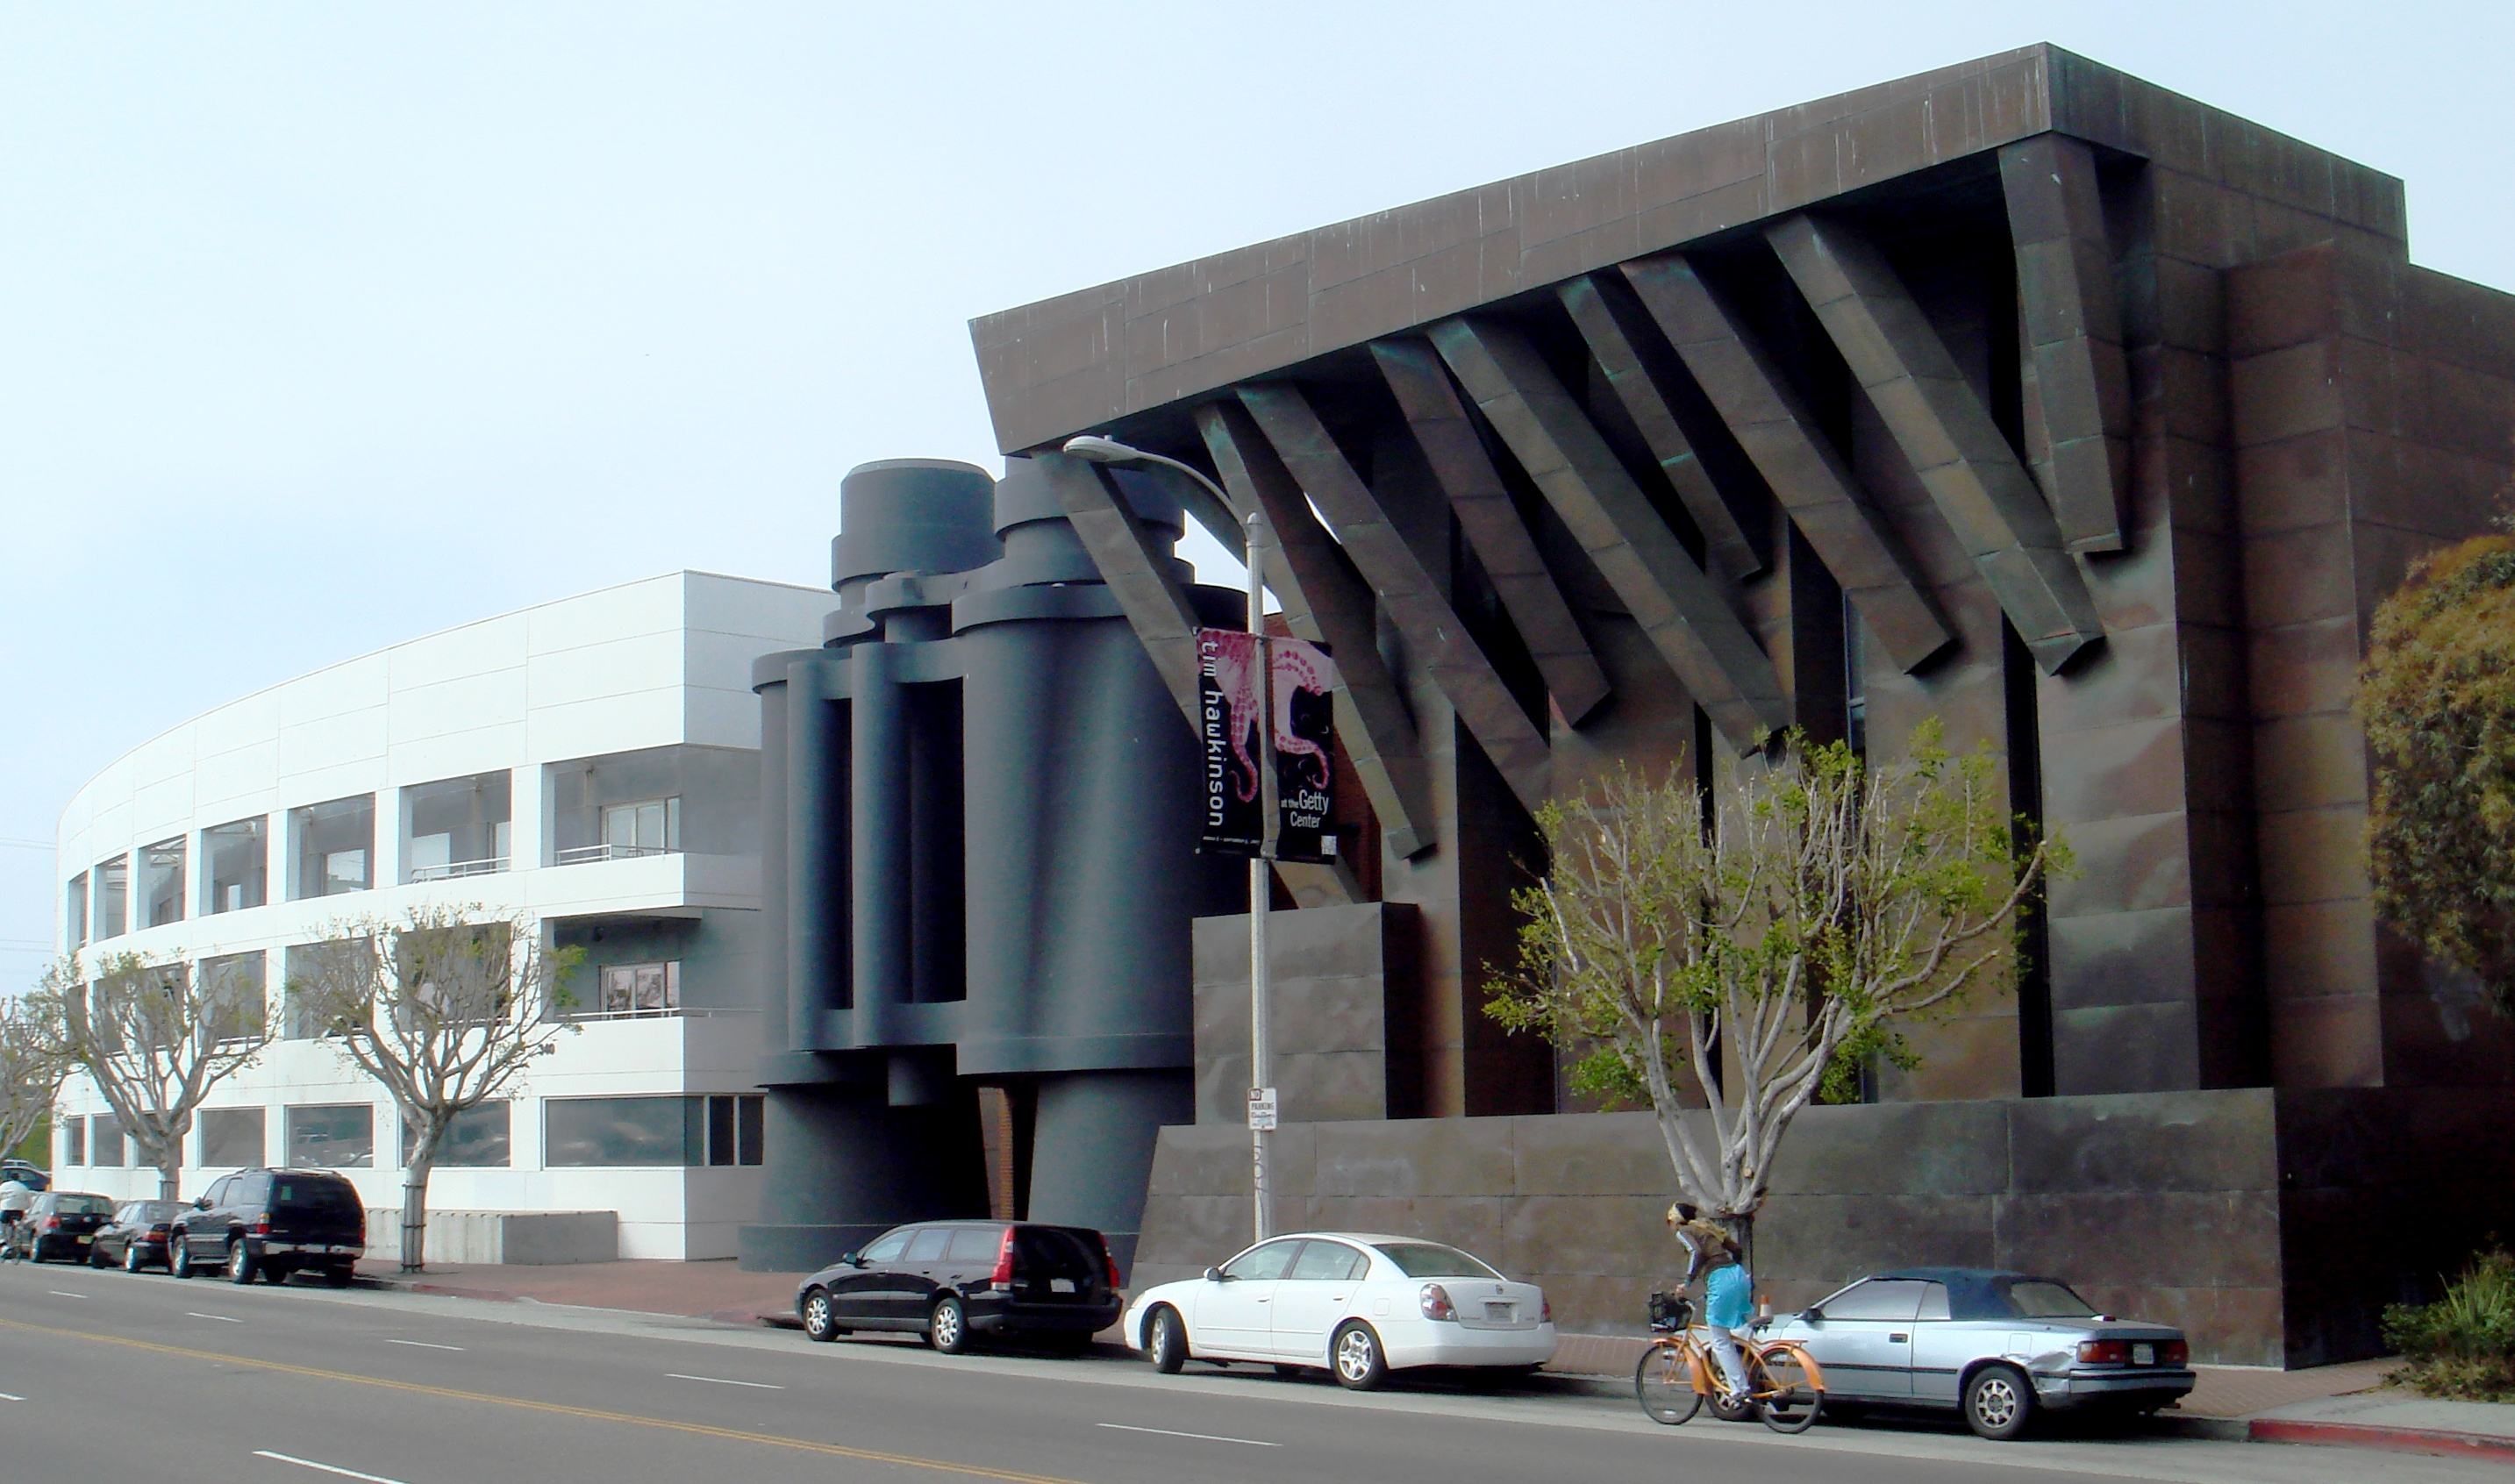 Binoculars Building (originally Chiat/Day Building), 340 Main Street. Frank Gehry, Architect. The binoculars, which house a conference room, were designed with help from Claes Oldenburg and Coosje van Bruggen